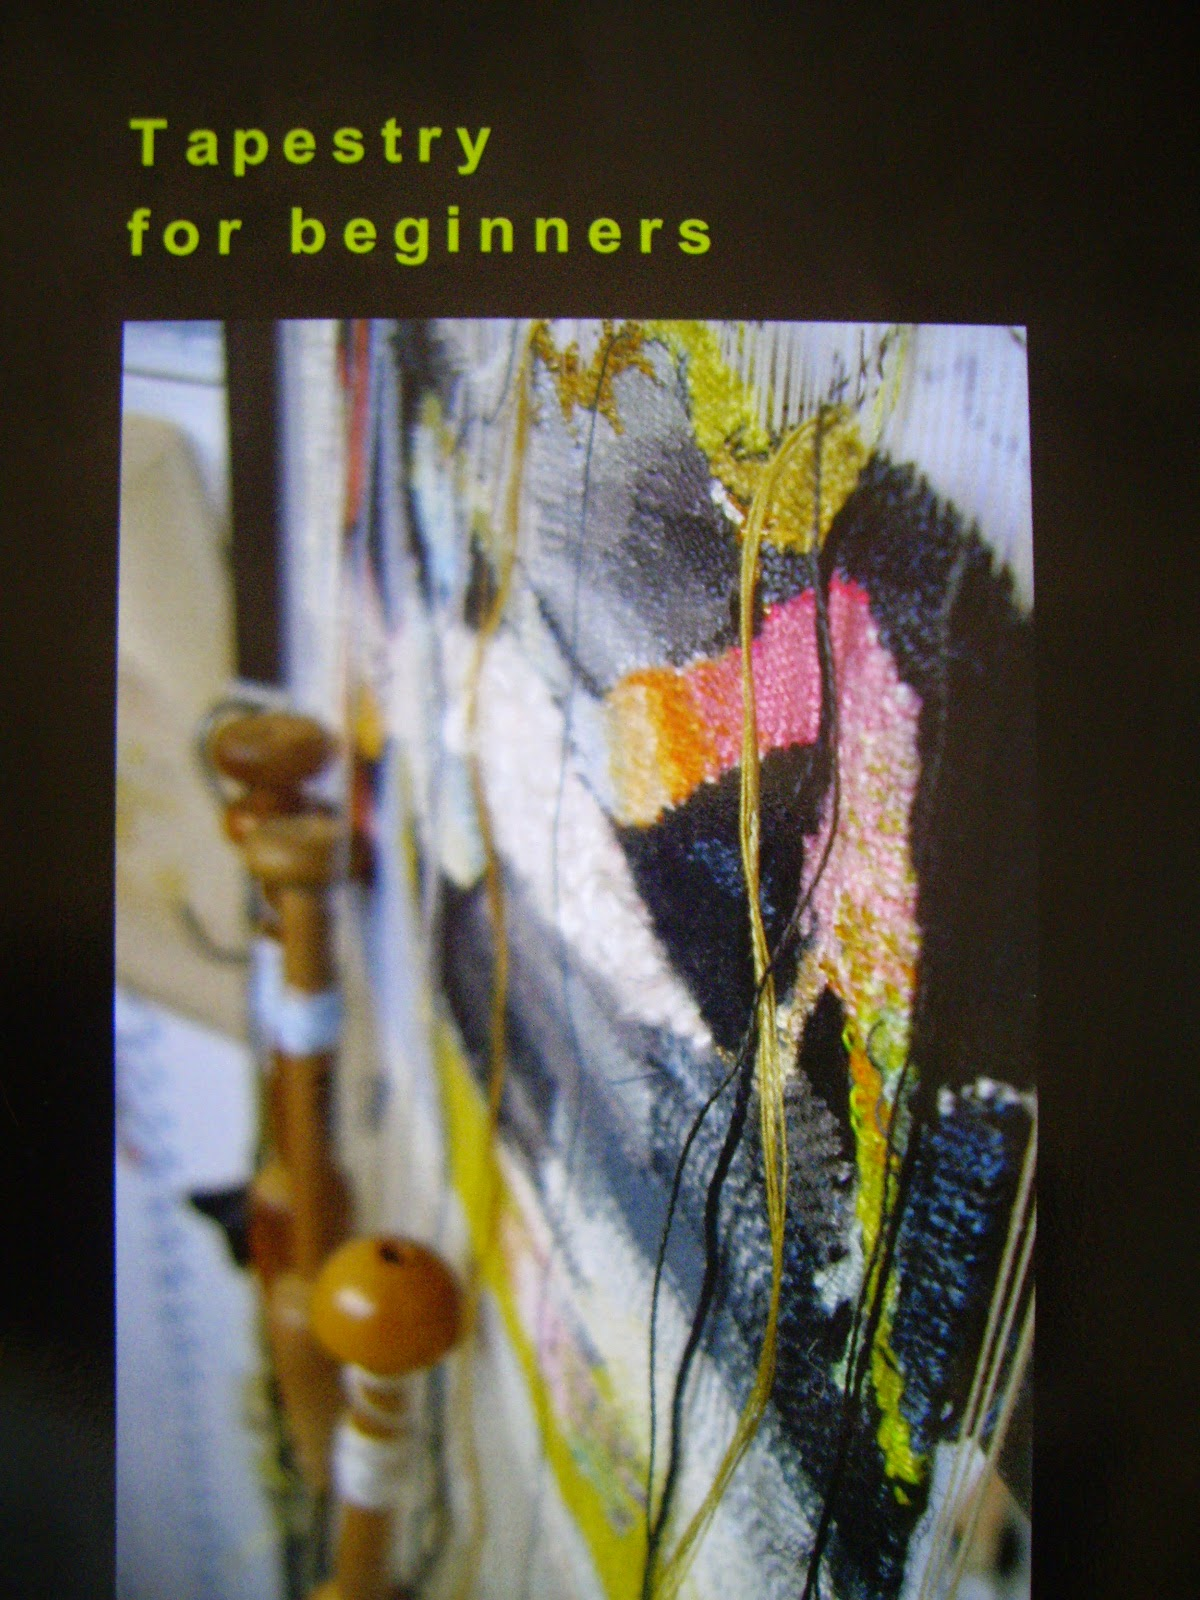 Tapestry for beginners, a tapestry primer